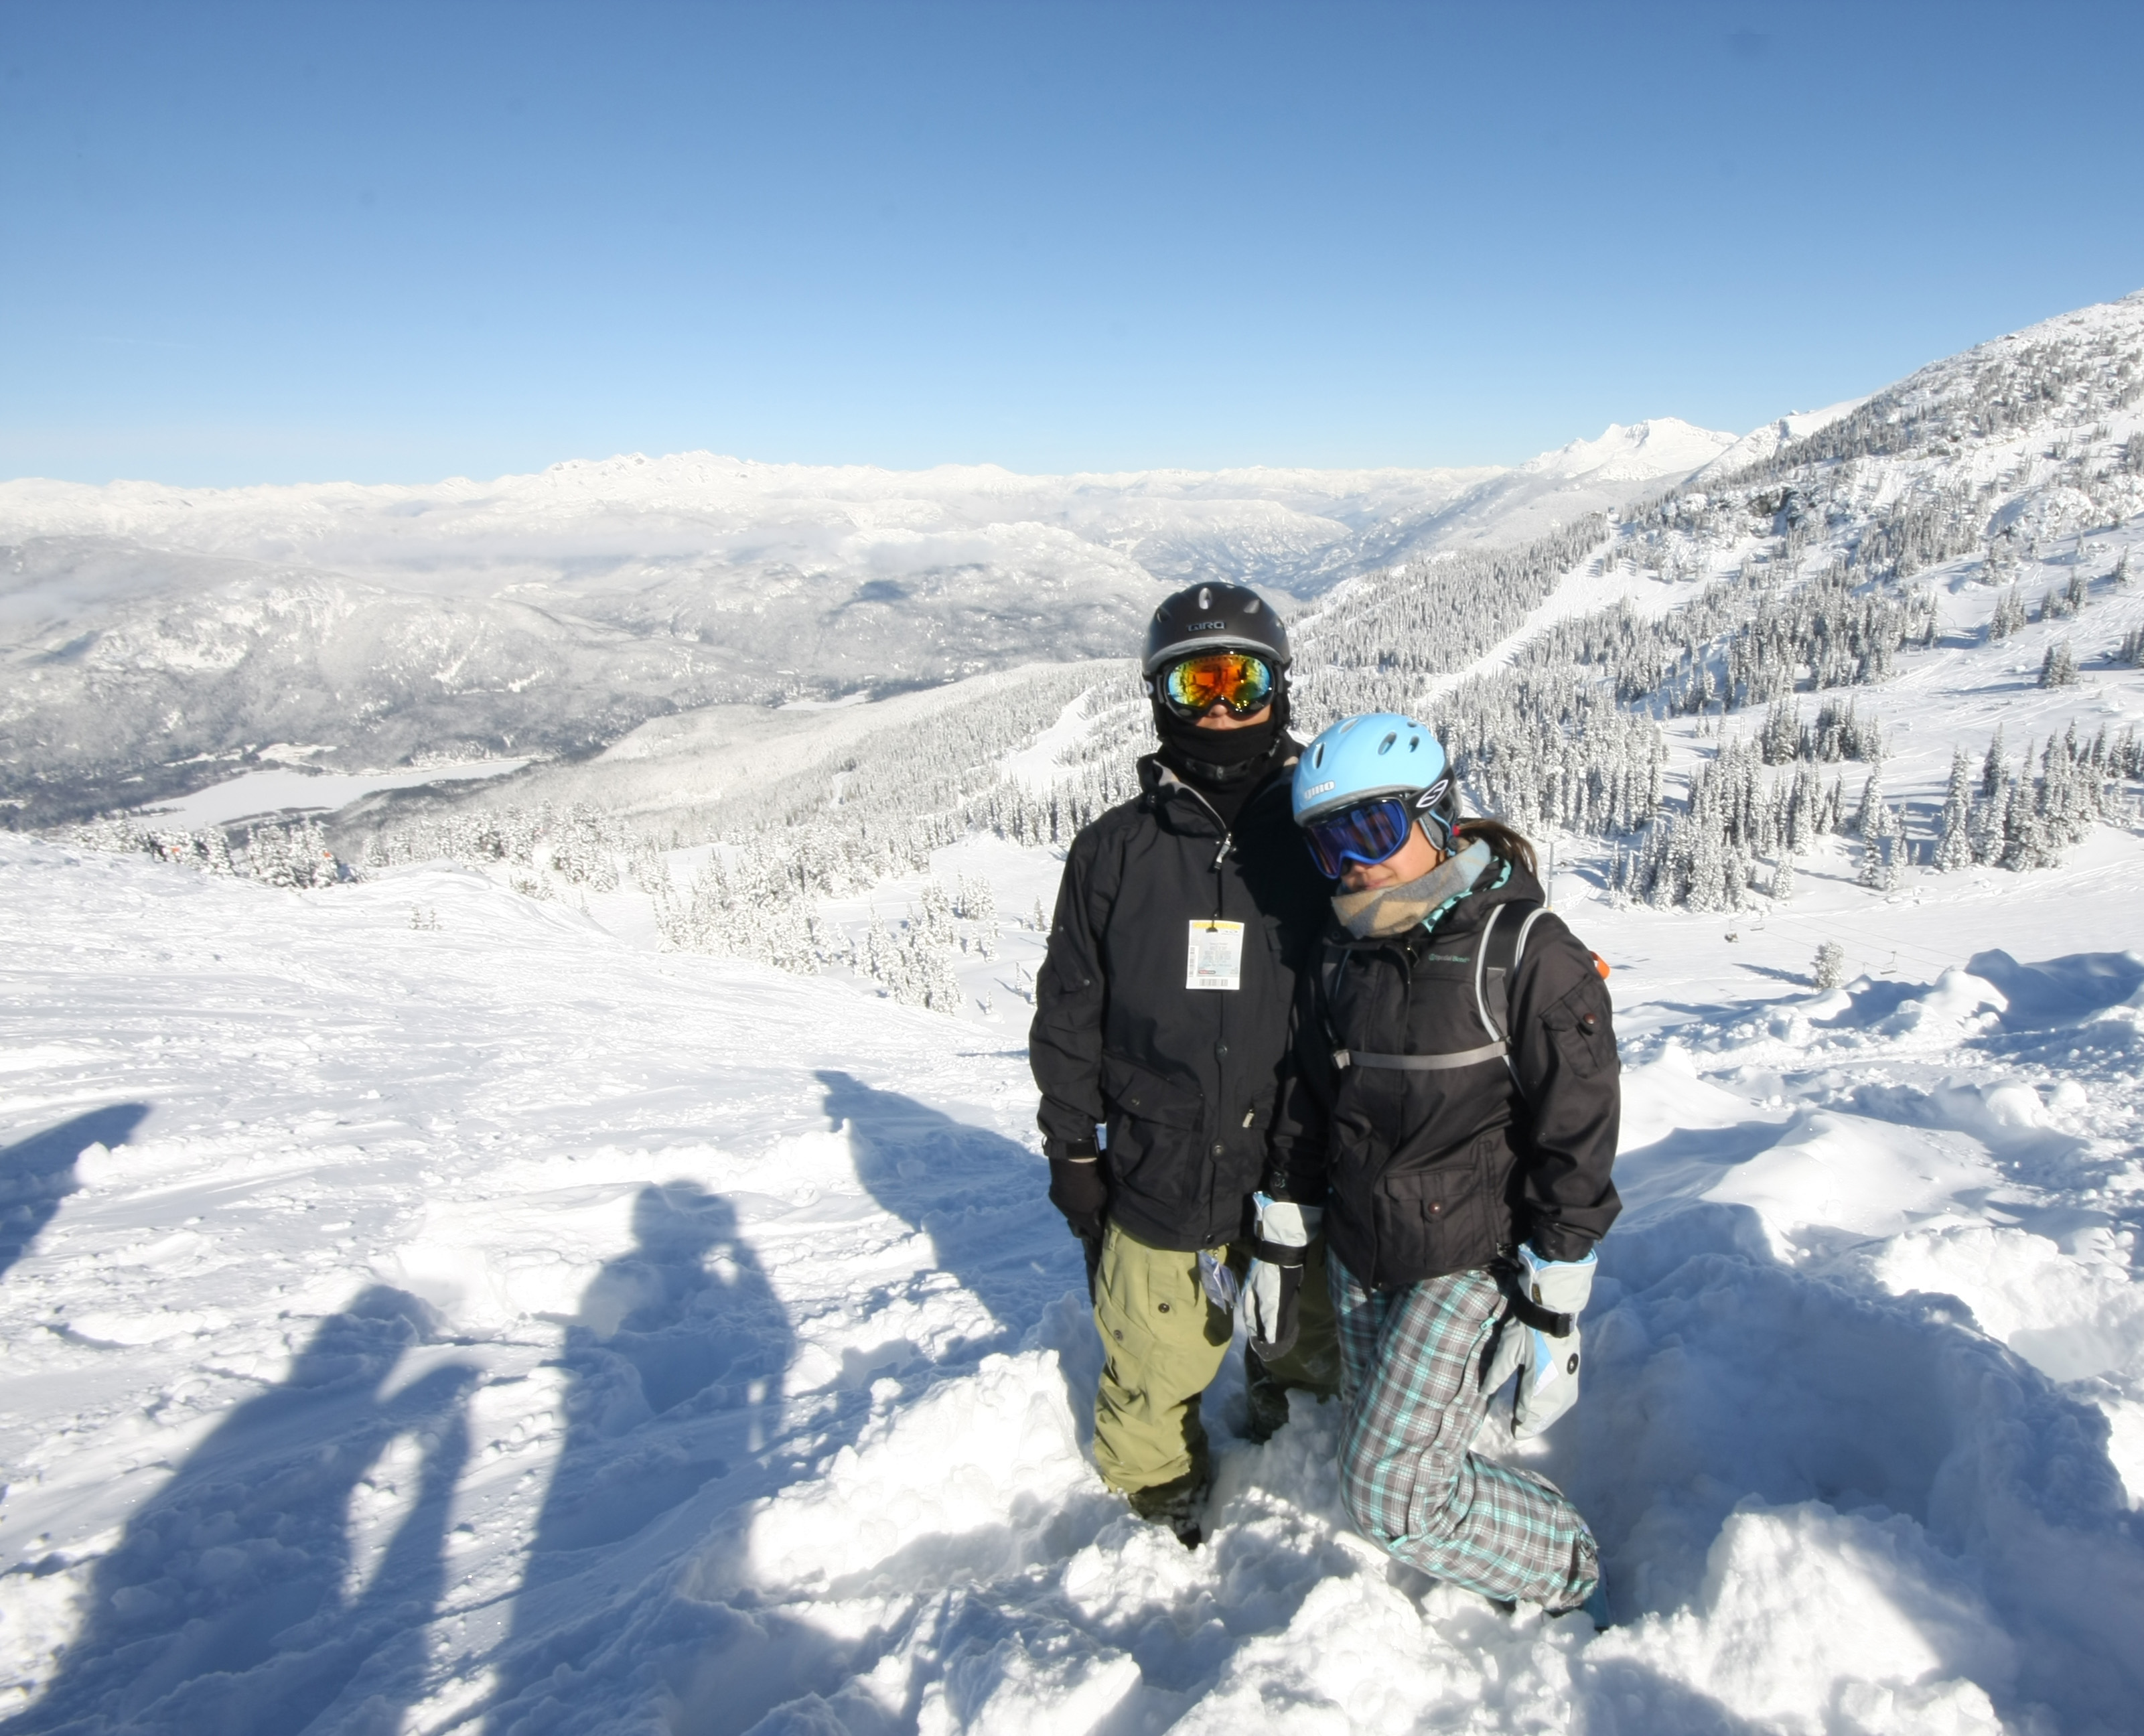 Snowboarding in Whistler: Introduction